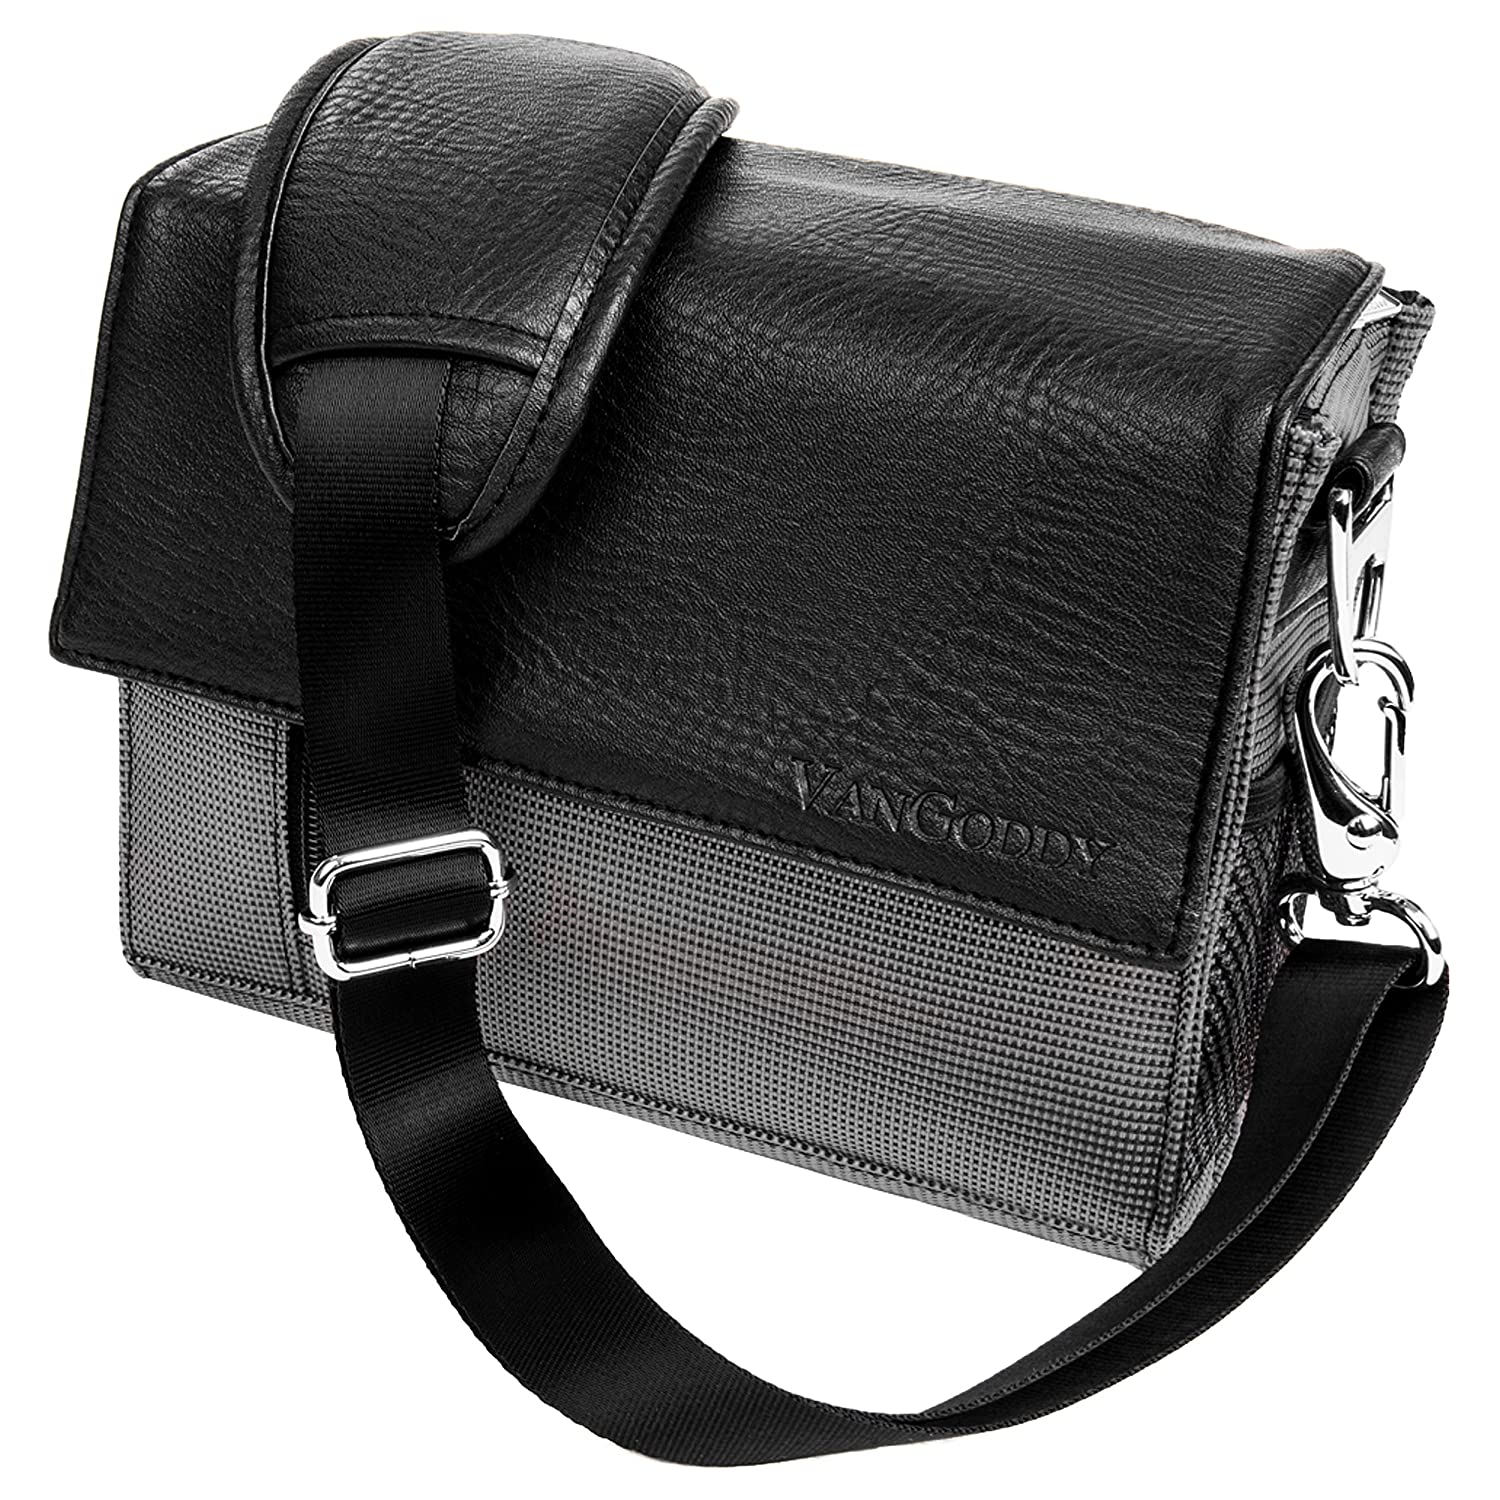 VanGoddy Metric Black Cross Body Shoulder Camera Bag for Panasonic Camcorder's EHCAMLEA202LU.12